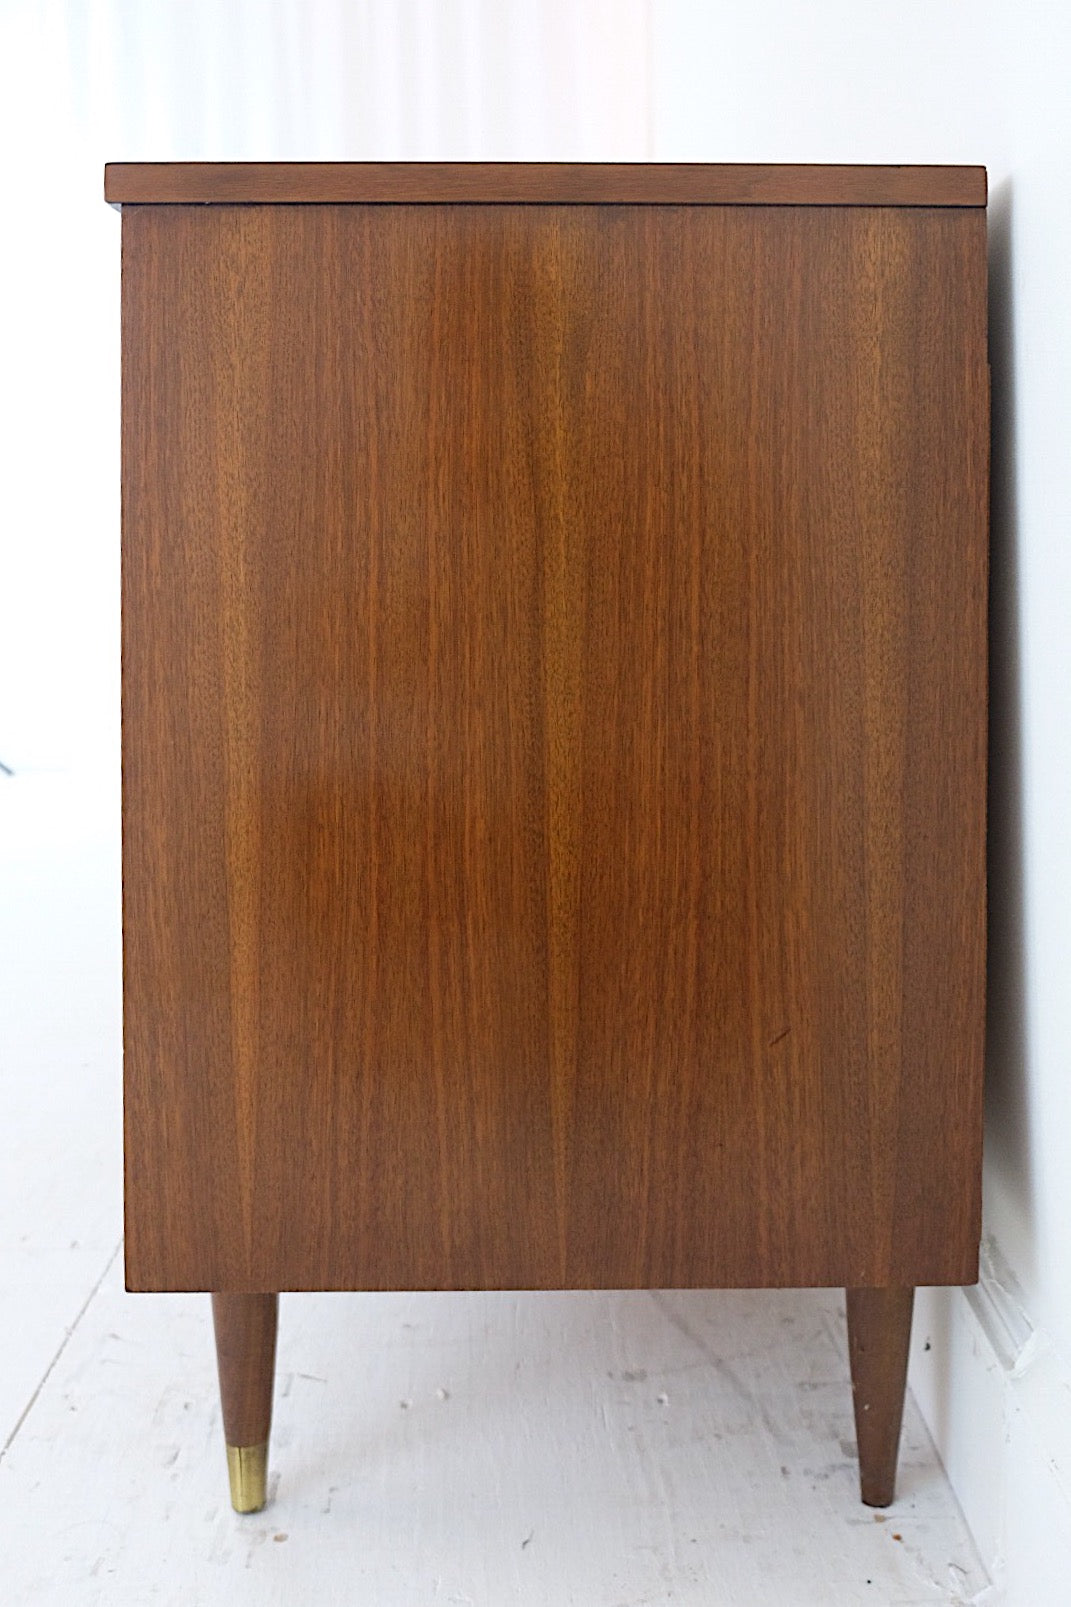 Mid Century Modern Low Dresser Six Drawers New Cherry Veneer Top, Beautiful Black and Brass Handles